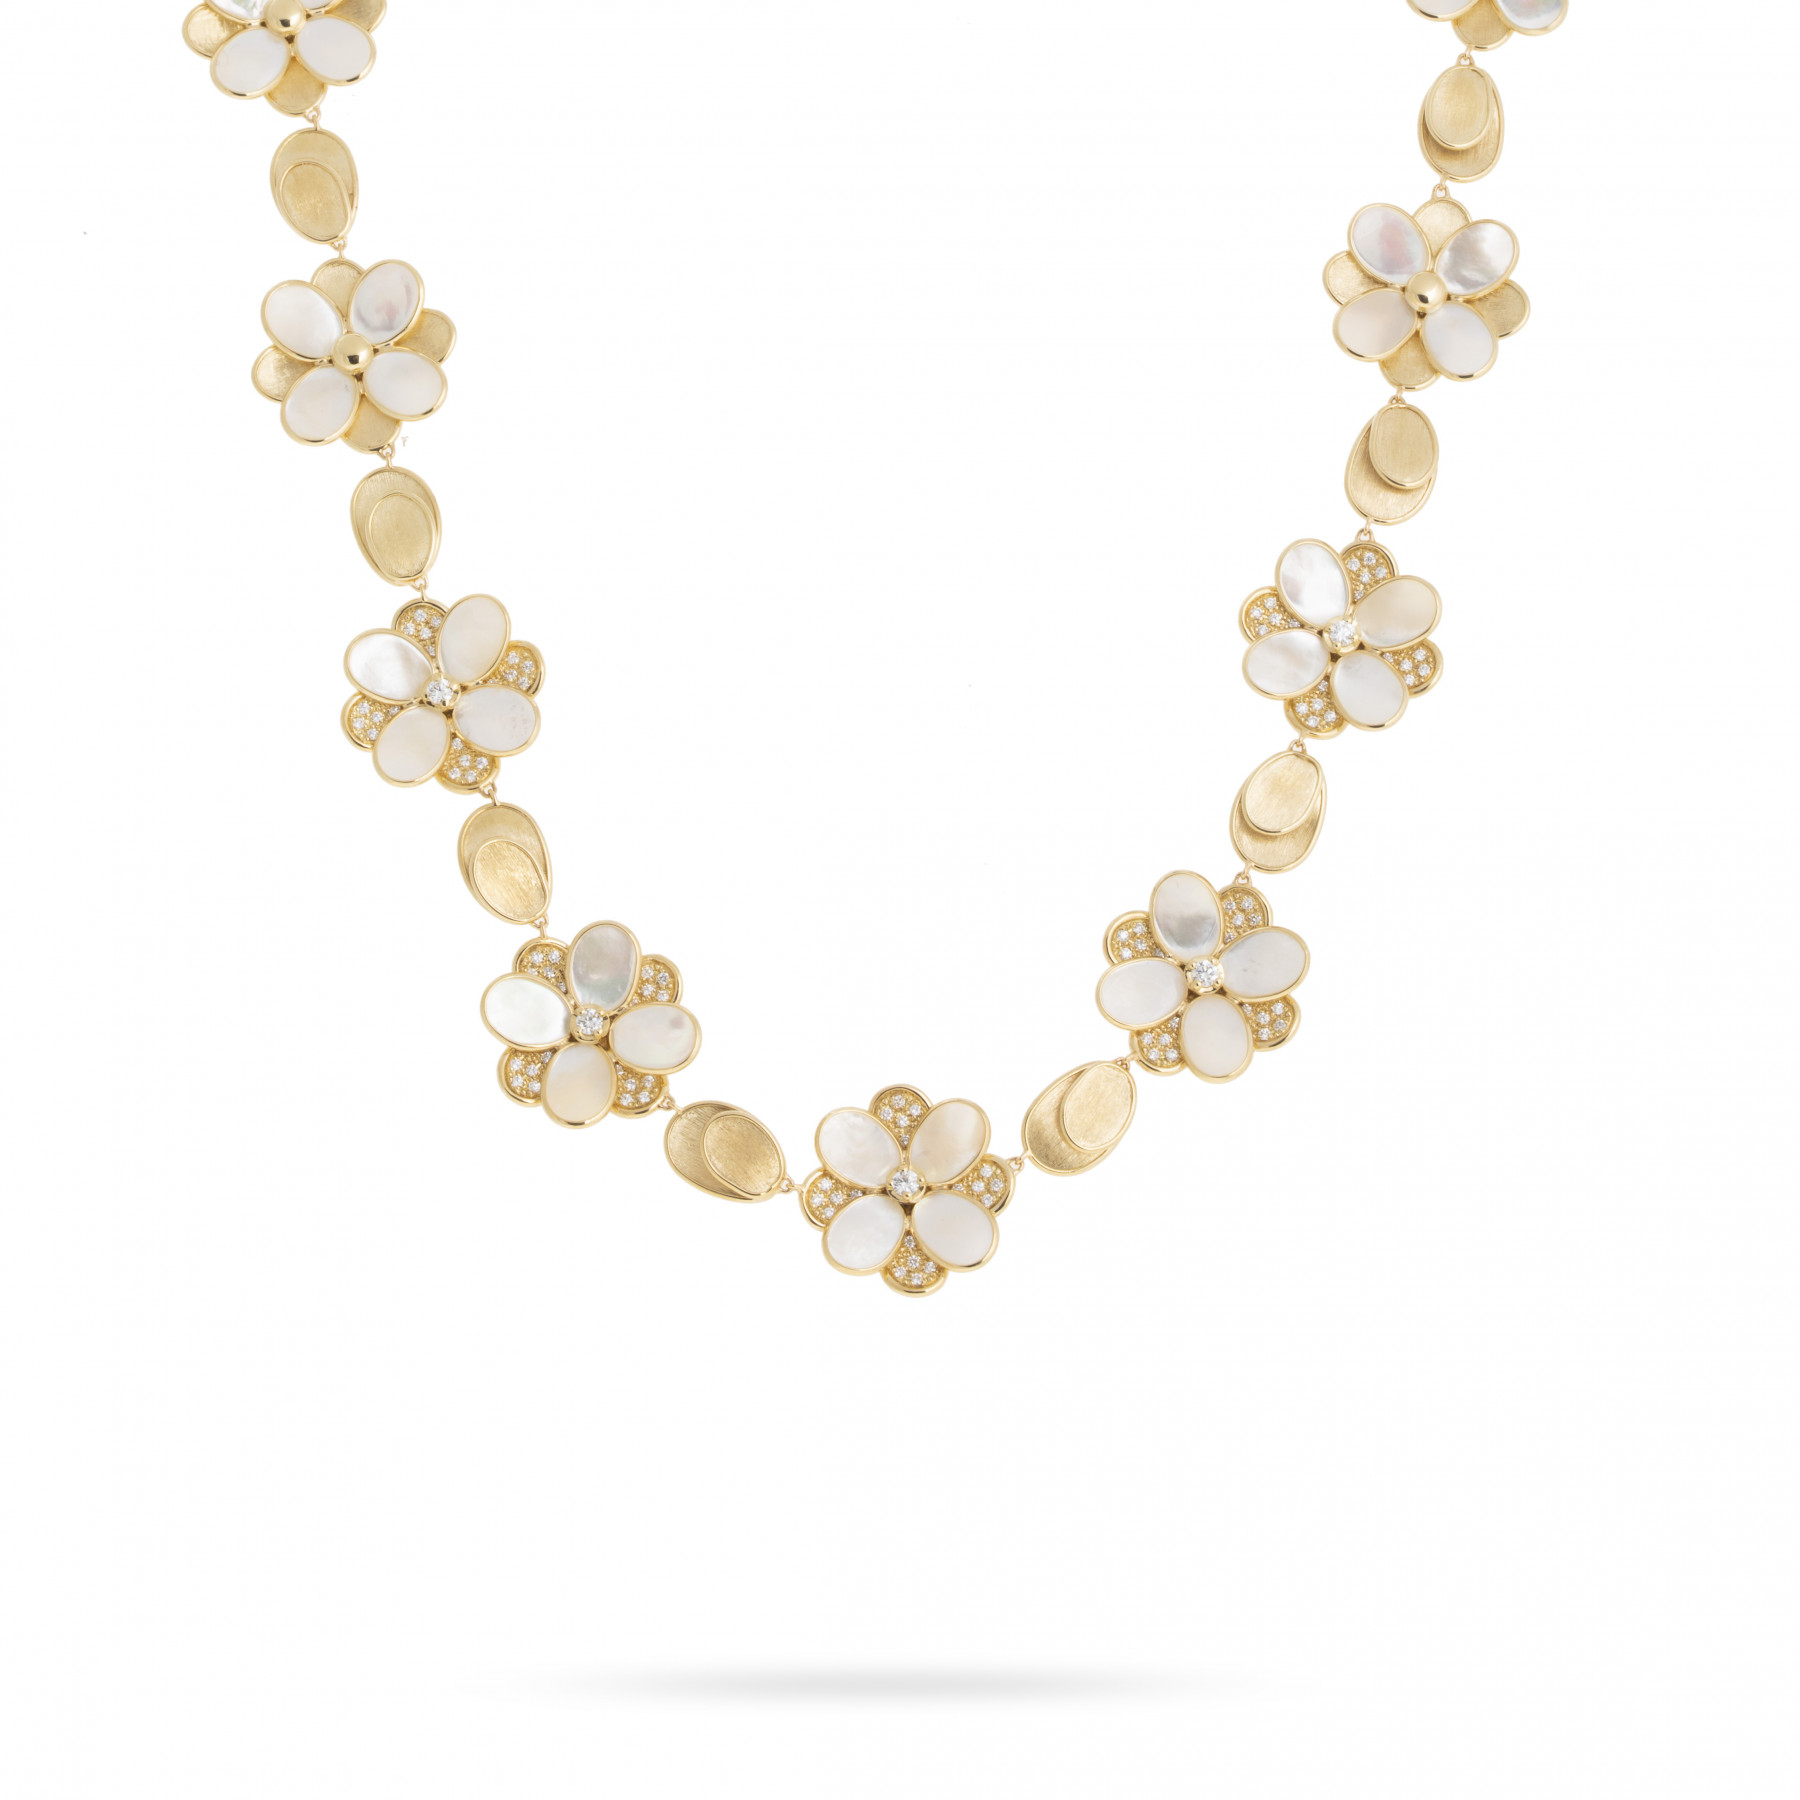 Marco Bicego Lunaria Petali 18K Gold Mother of Pearl Flower Necklace with Diamonds main view